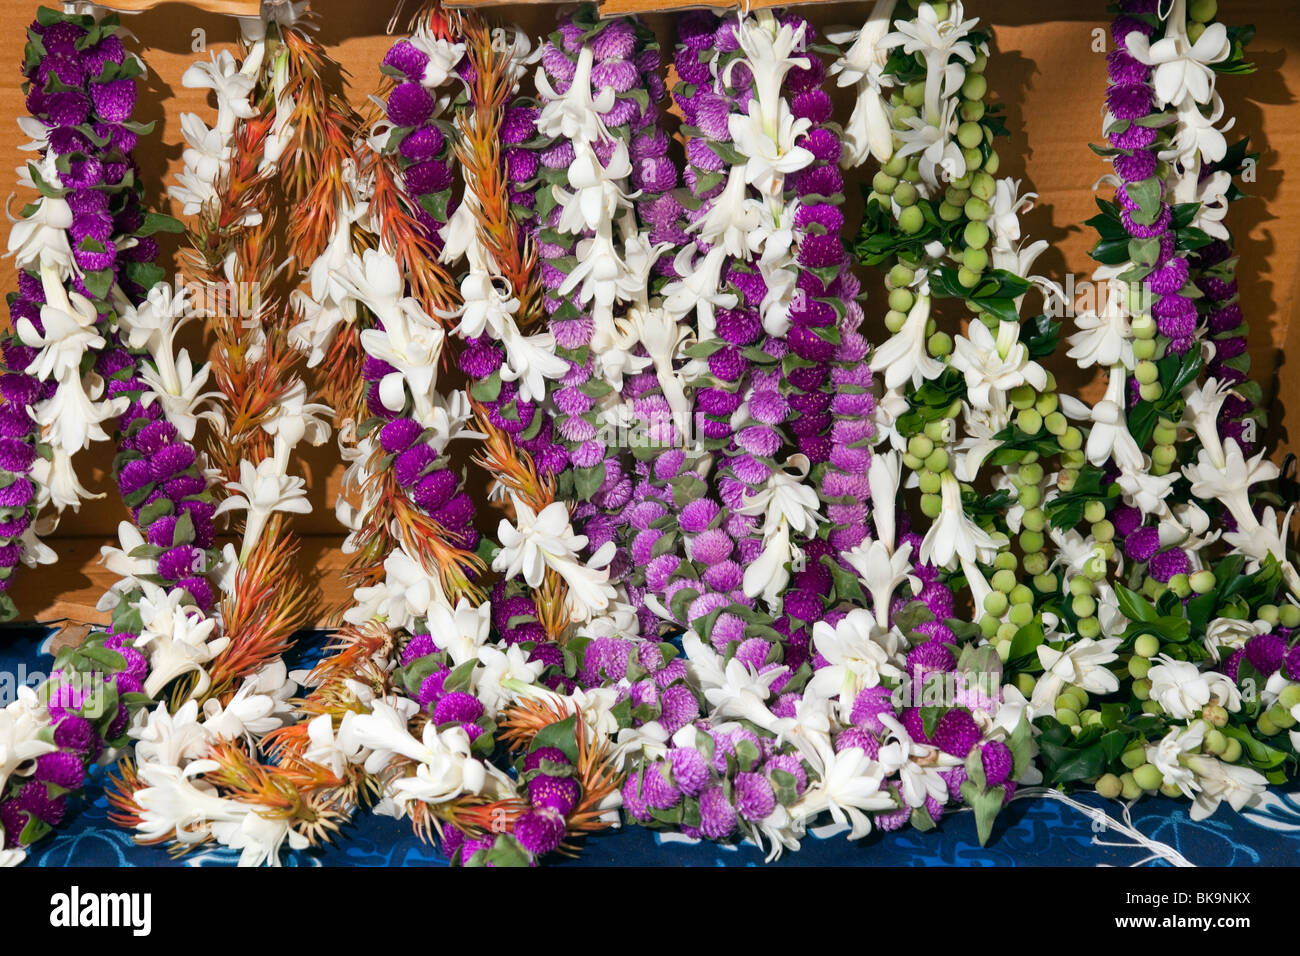 Floral leis and haku ready for sale by vendors at merrie monarch floral leis and haku ready for sale by vendors at merrie monarch festival in hilo hawaii izmirmasajfo